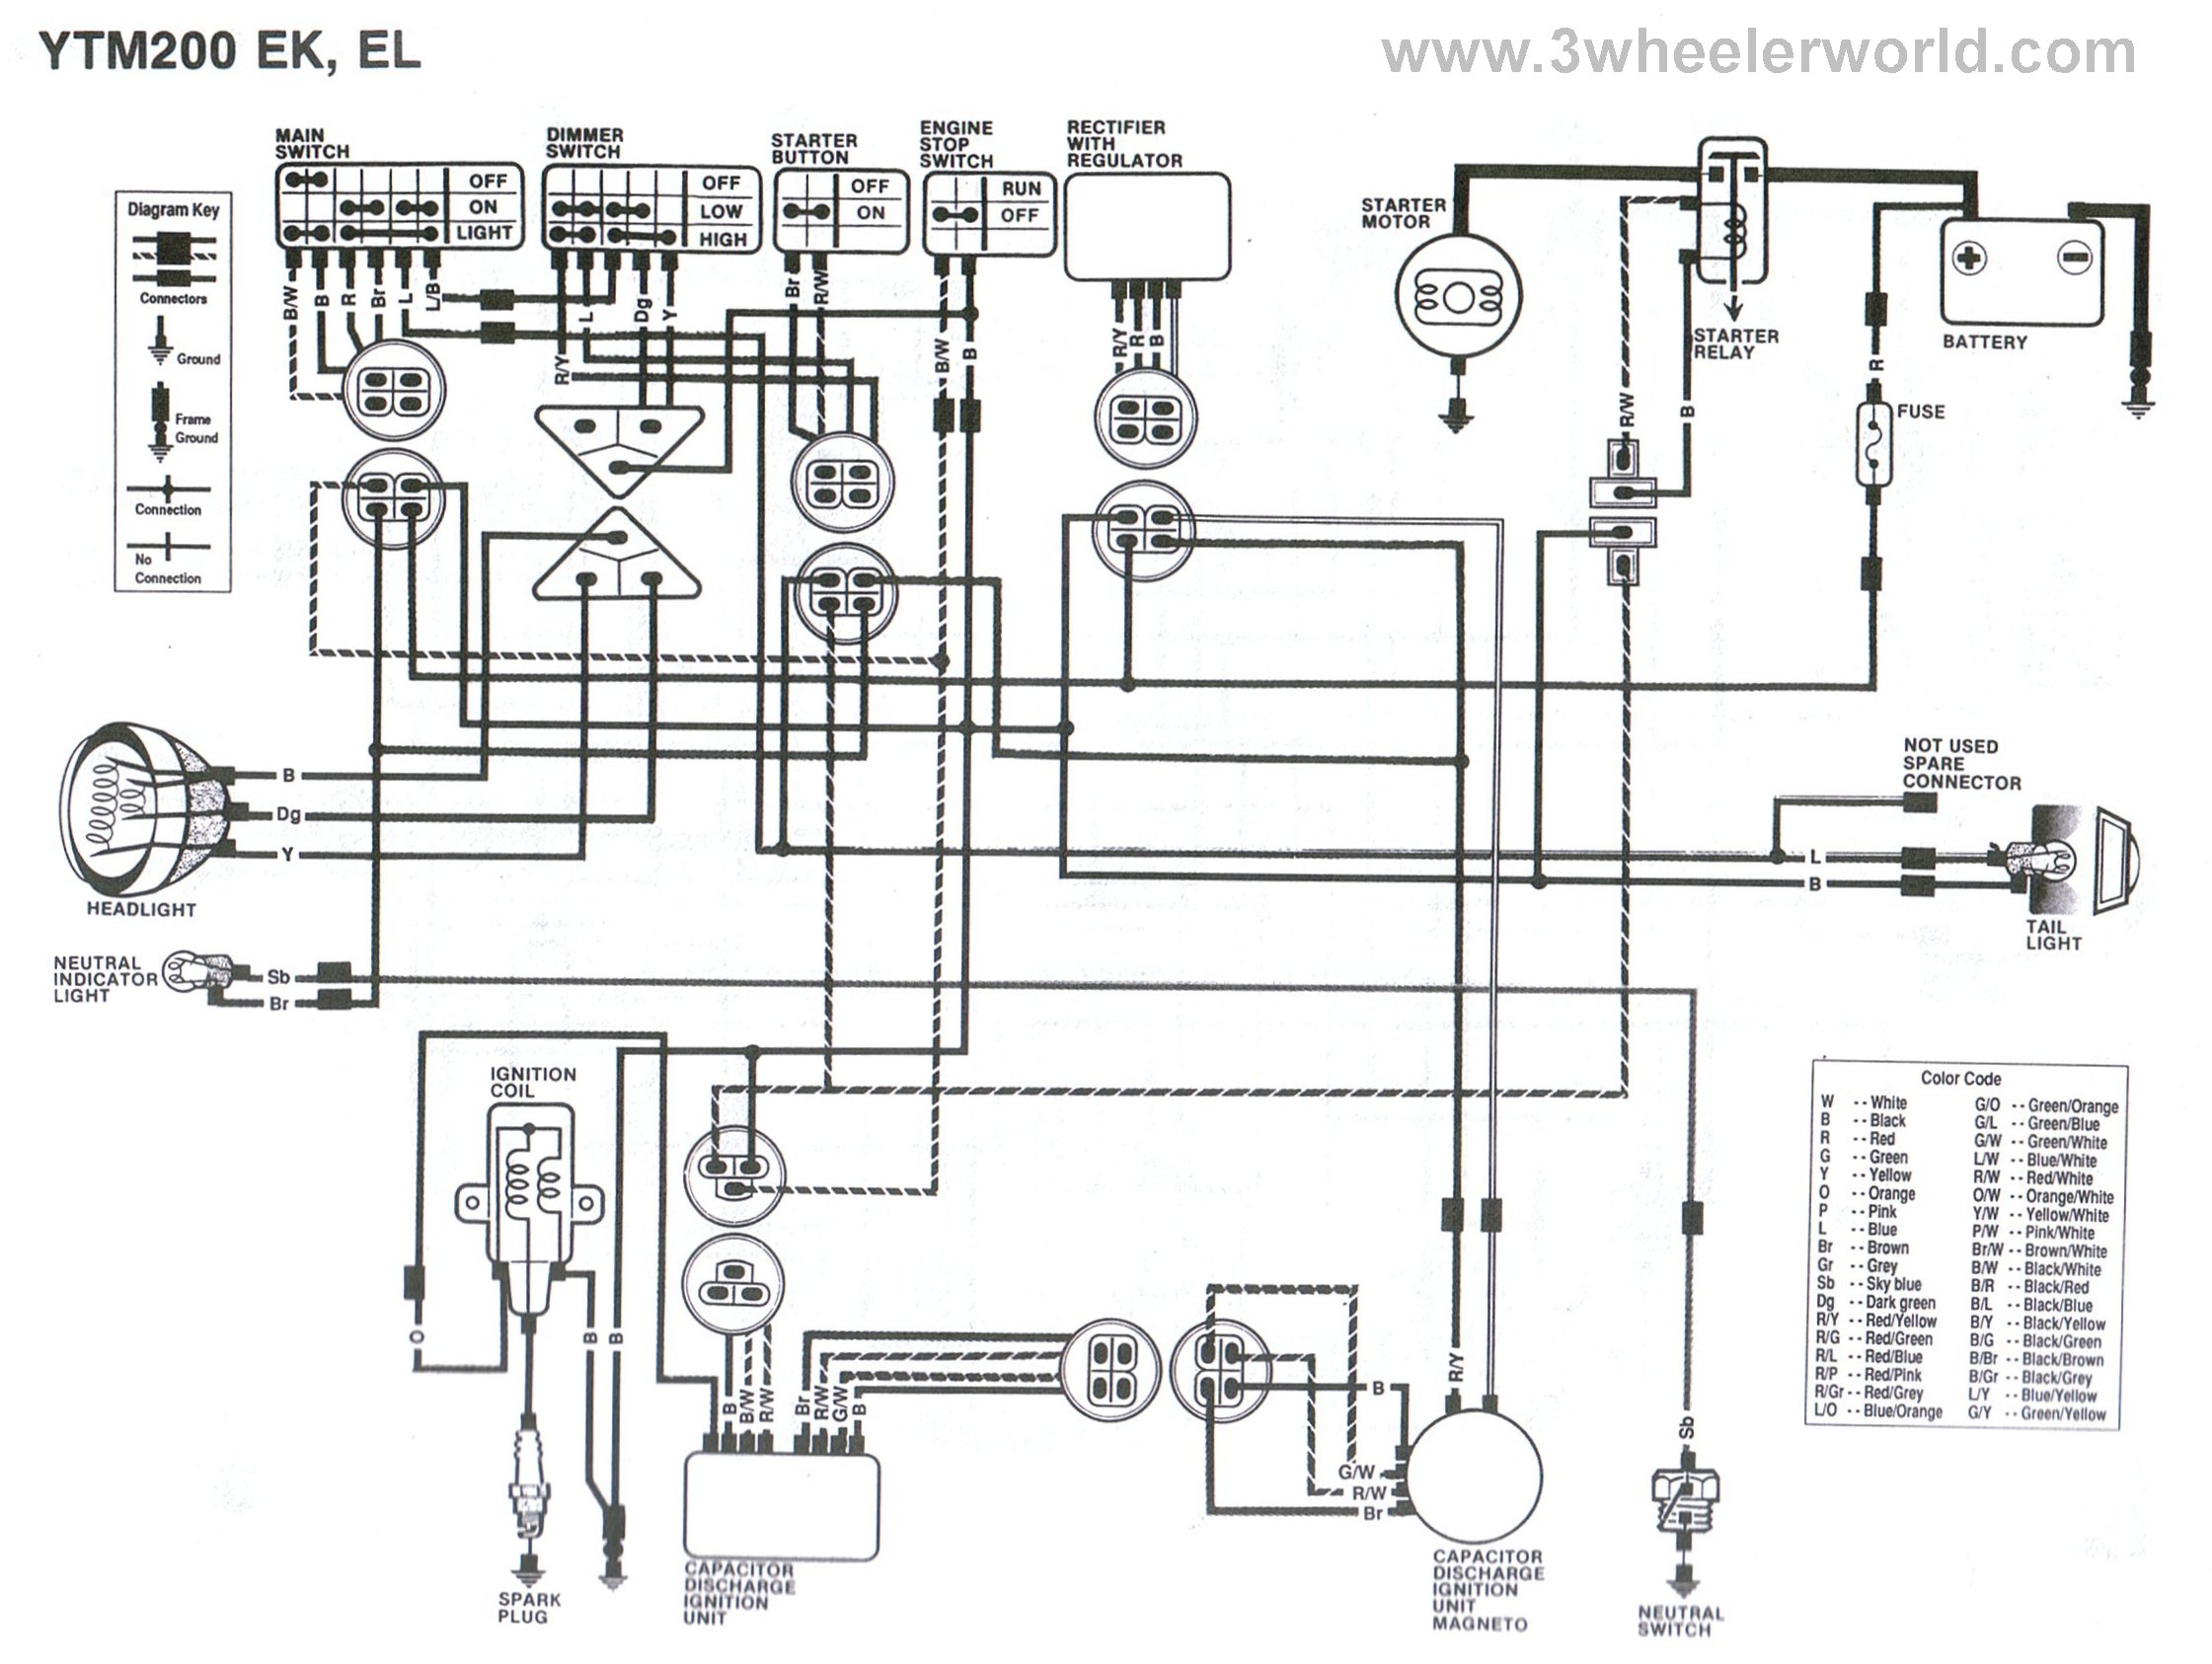 YTM200EKEL 3 wheeler world tech help yamaha wiring diagrams 1980 yamaha xt 250 wiring diagram at bakdesigns.co